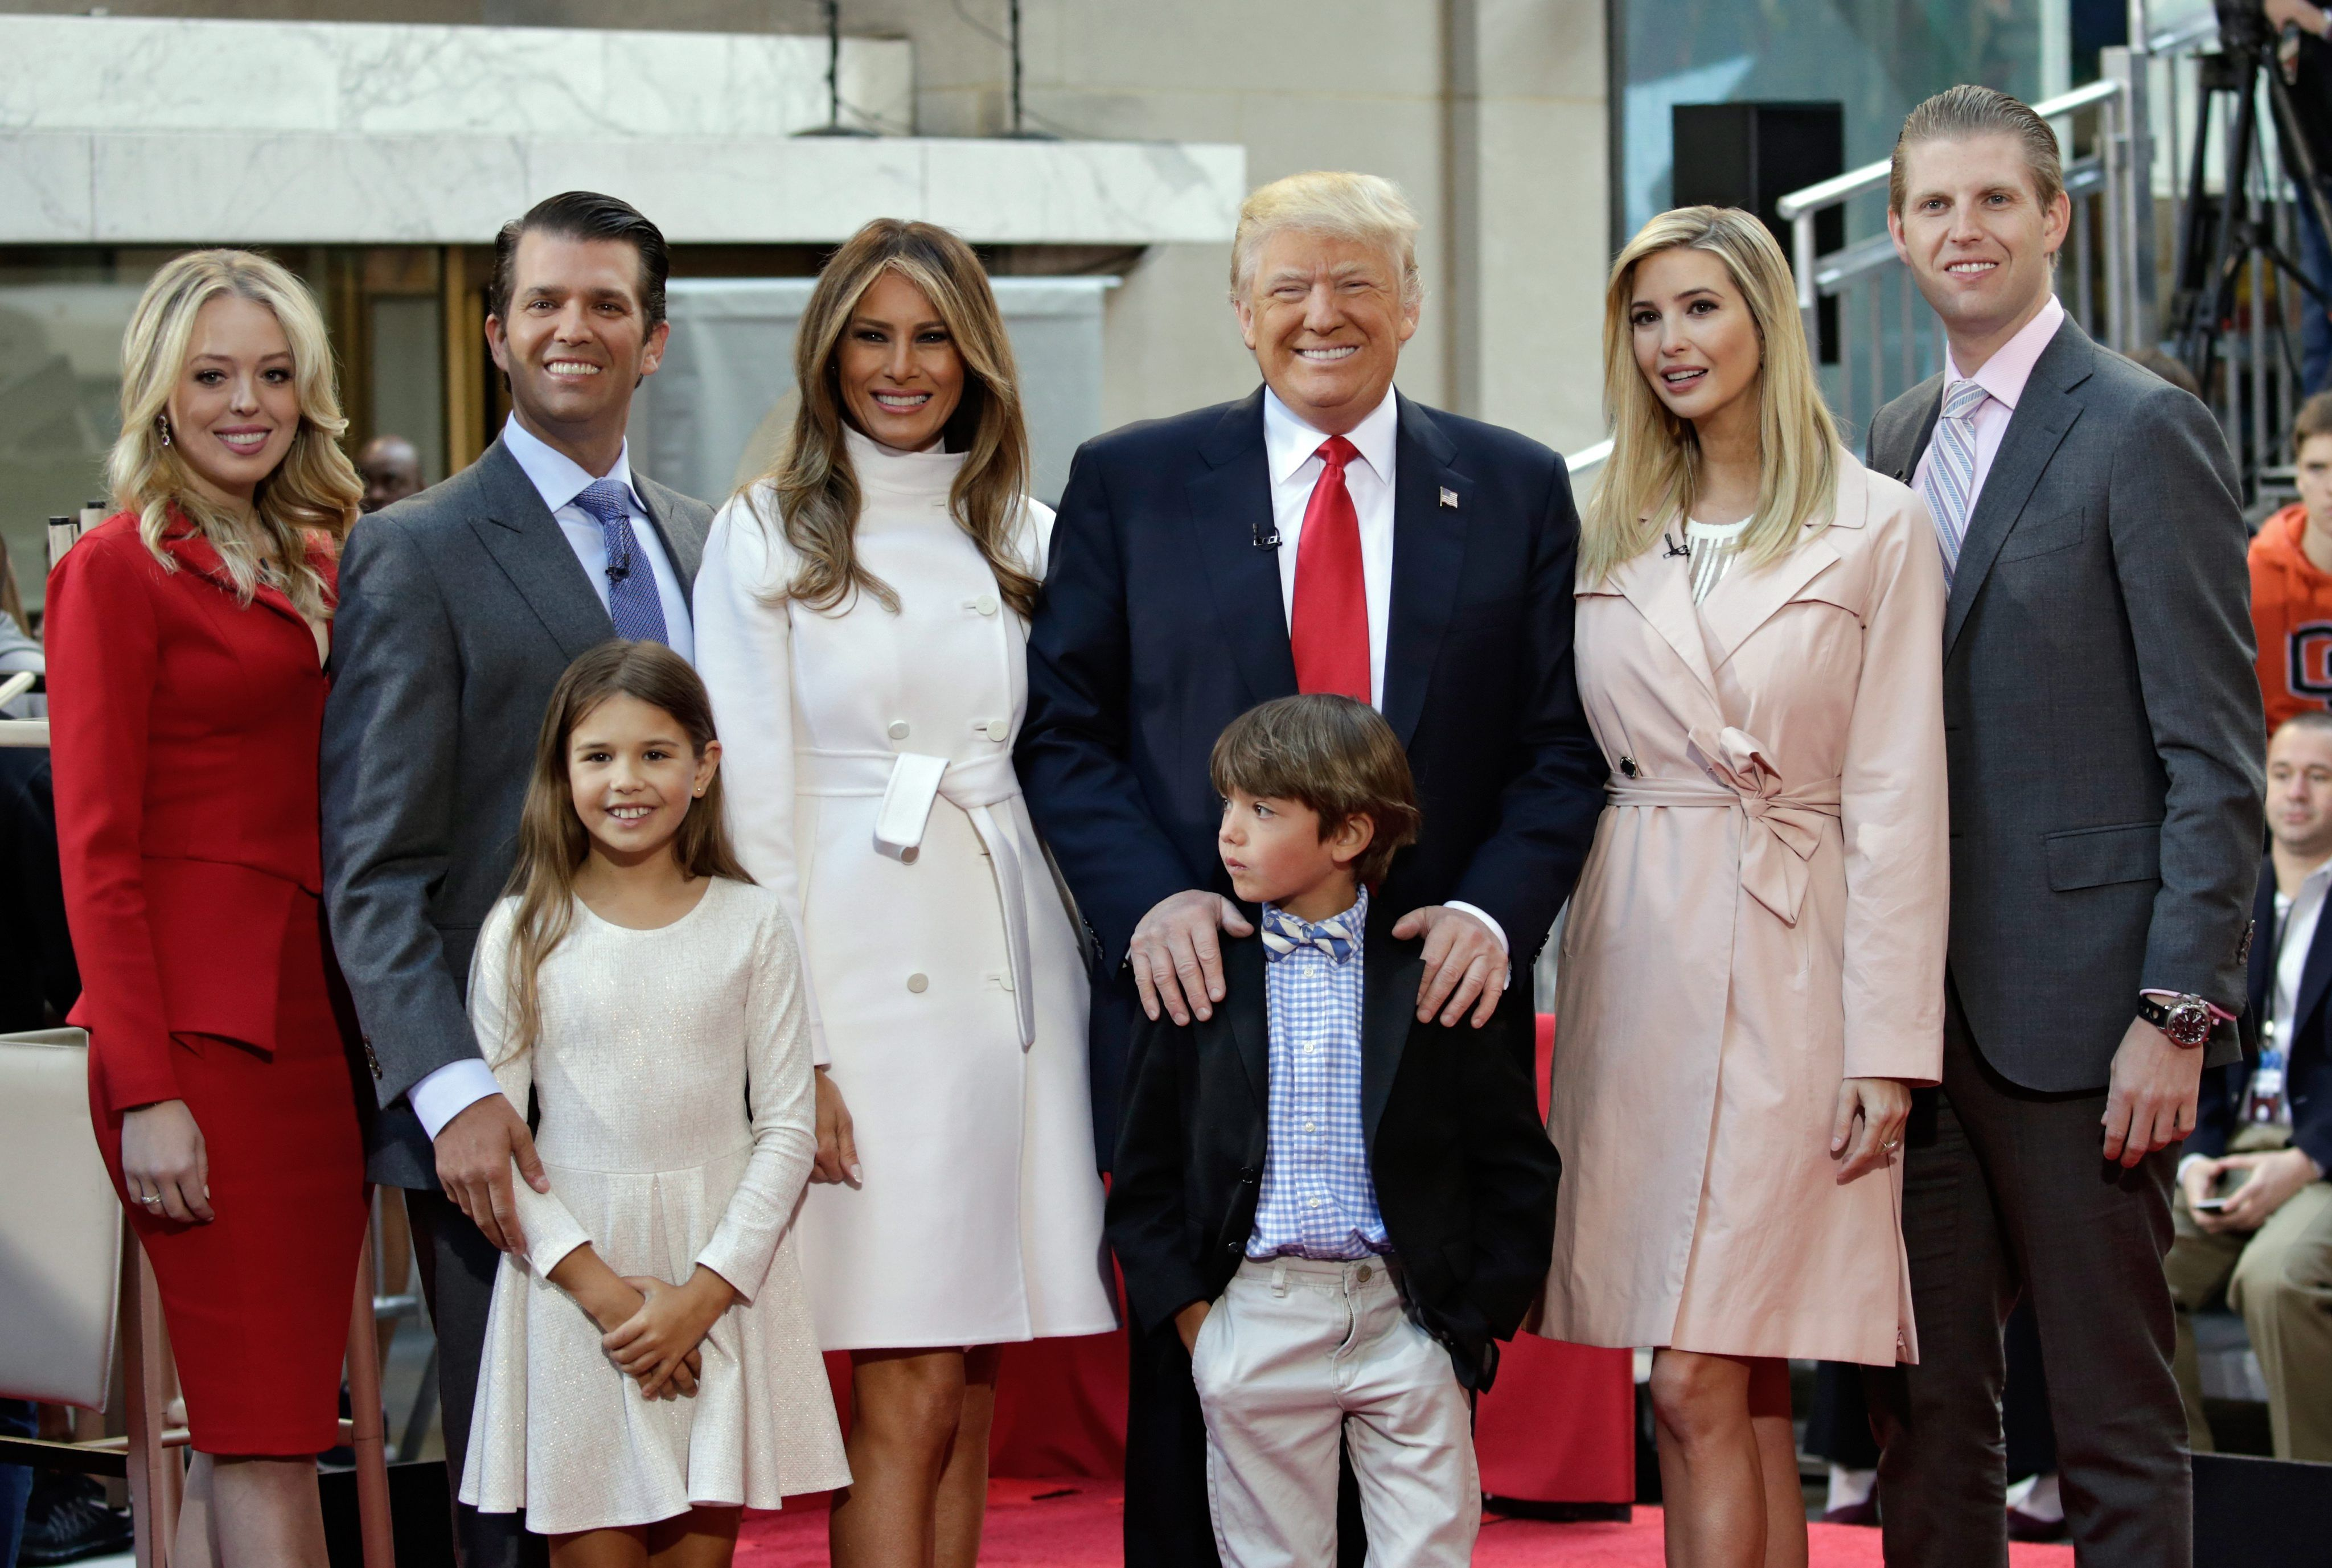 10 Shocking Things You Didn't Know About Donald Trump's Kids - Fame10